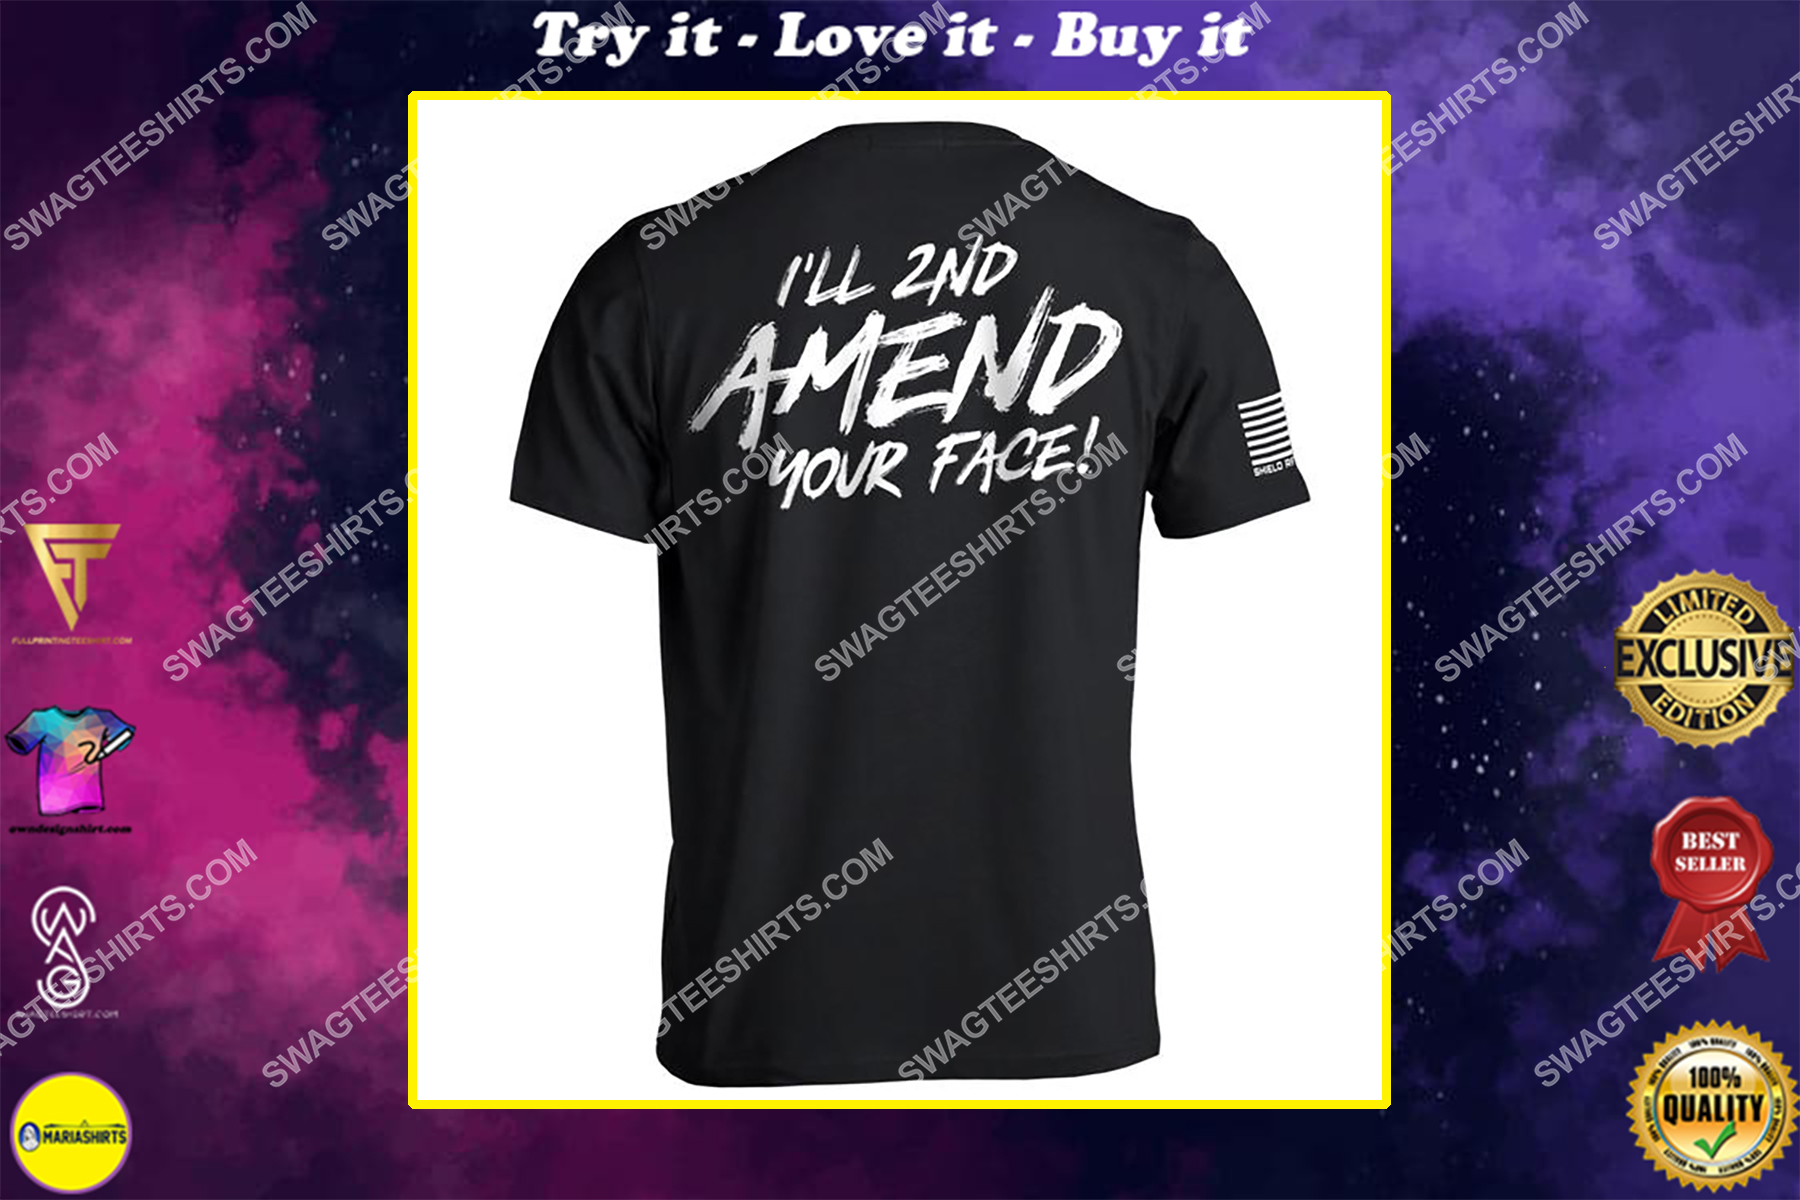 i'll 2nd amend your face political full print shirt